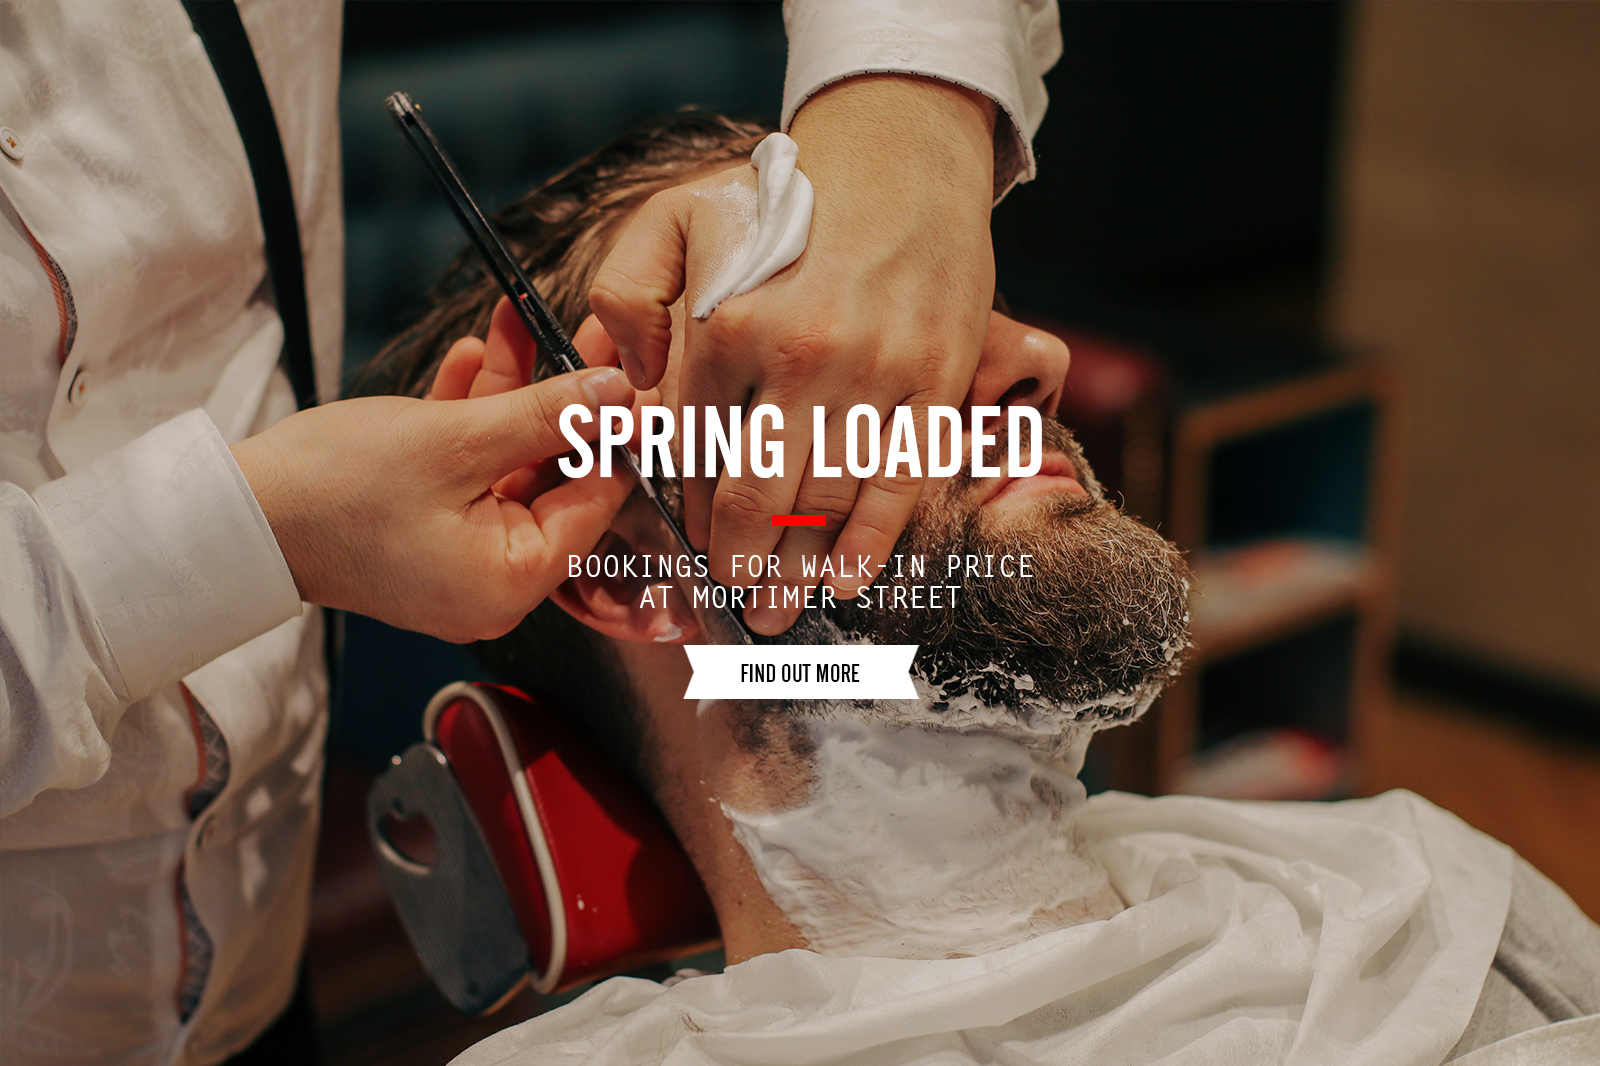 Spring Loaded - Booking For Walk-in Price At Mortimer Street